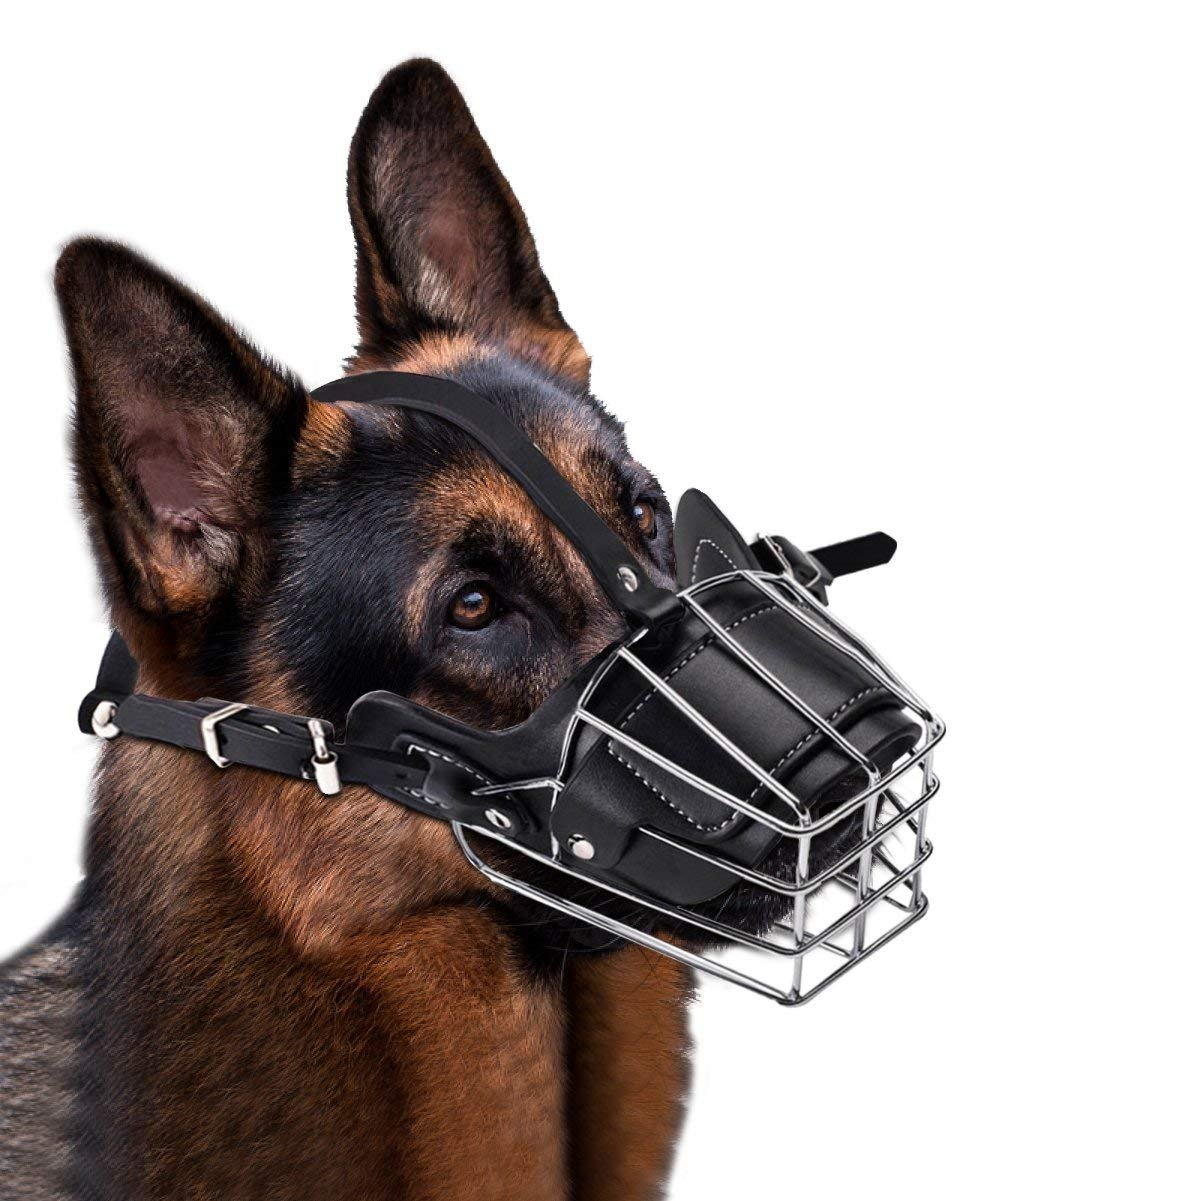 Lmlly Dog Muzzle, Adjustable Metal Mask for Anti-Bite Wire Leather Strong Basket Breathable Safety Protection Cover for Medium/Large Pets(Black,M)